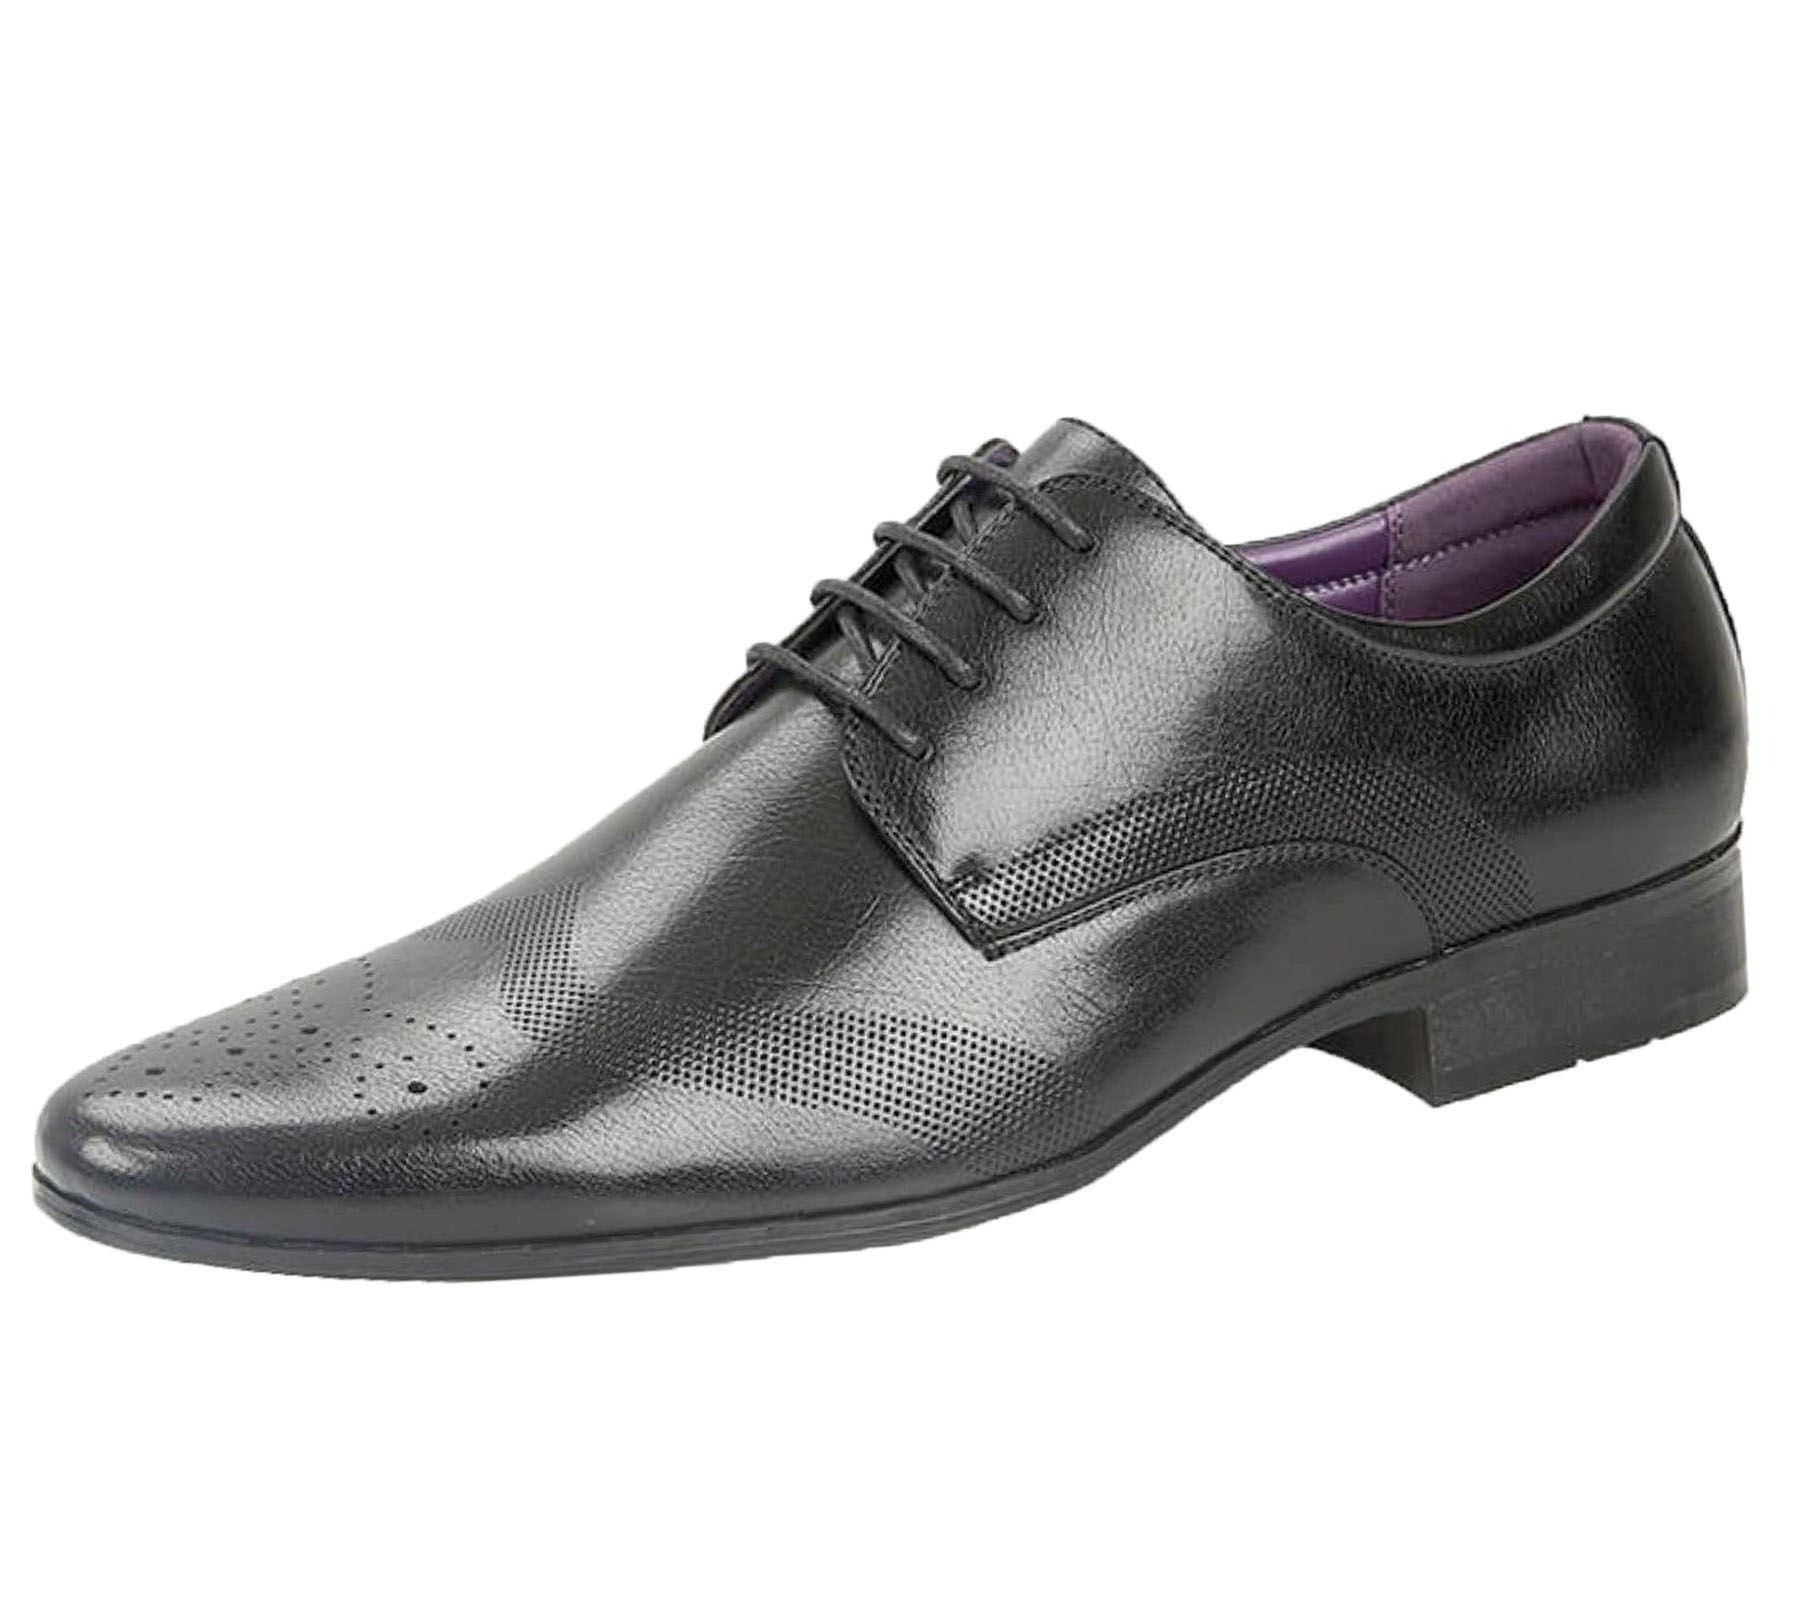 Mens-Brogues-Shoes-Office-Wedding-Formal-Smart-Dress-Shoes-New-Size miniatura 14